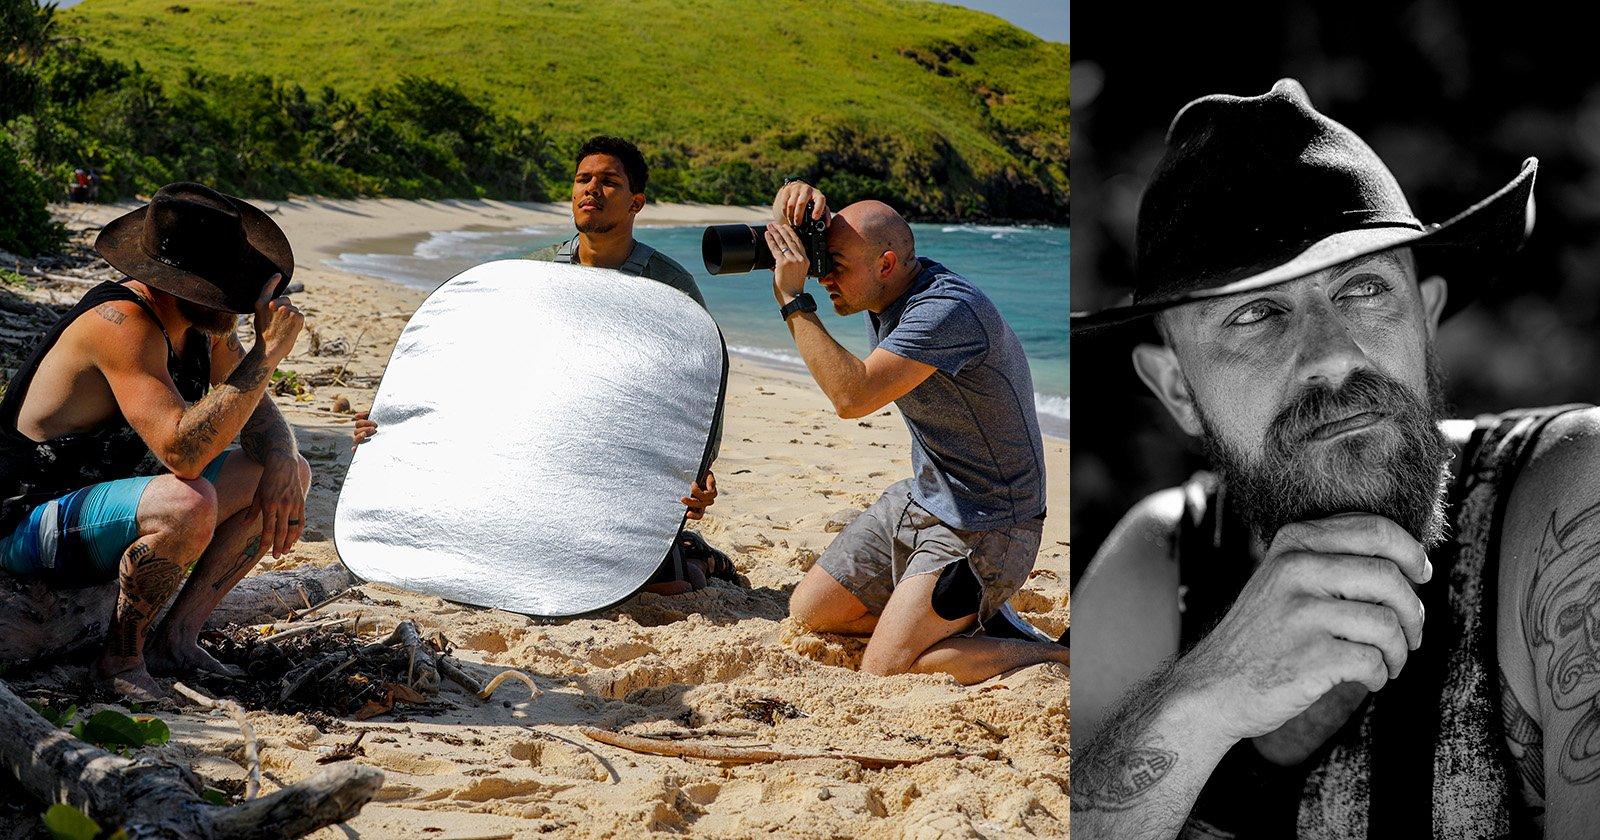 Photographing the Contestants of Survivor 40 on a Deserted Island in Fiji